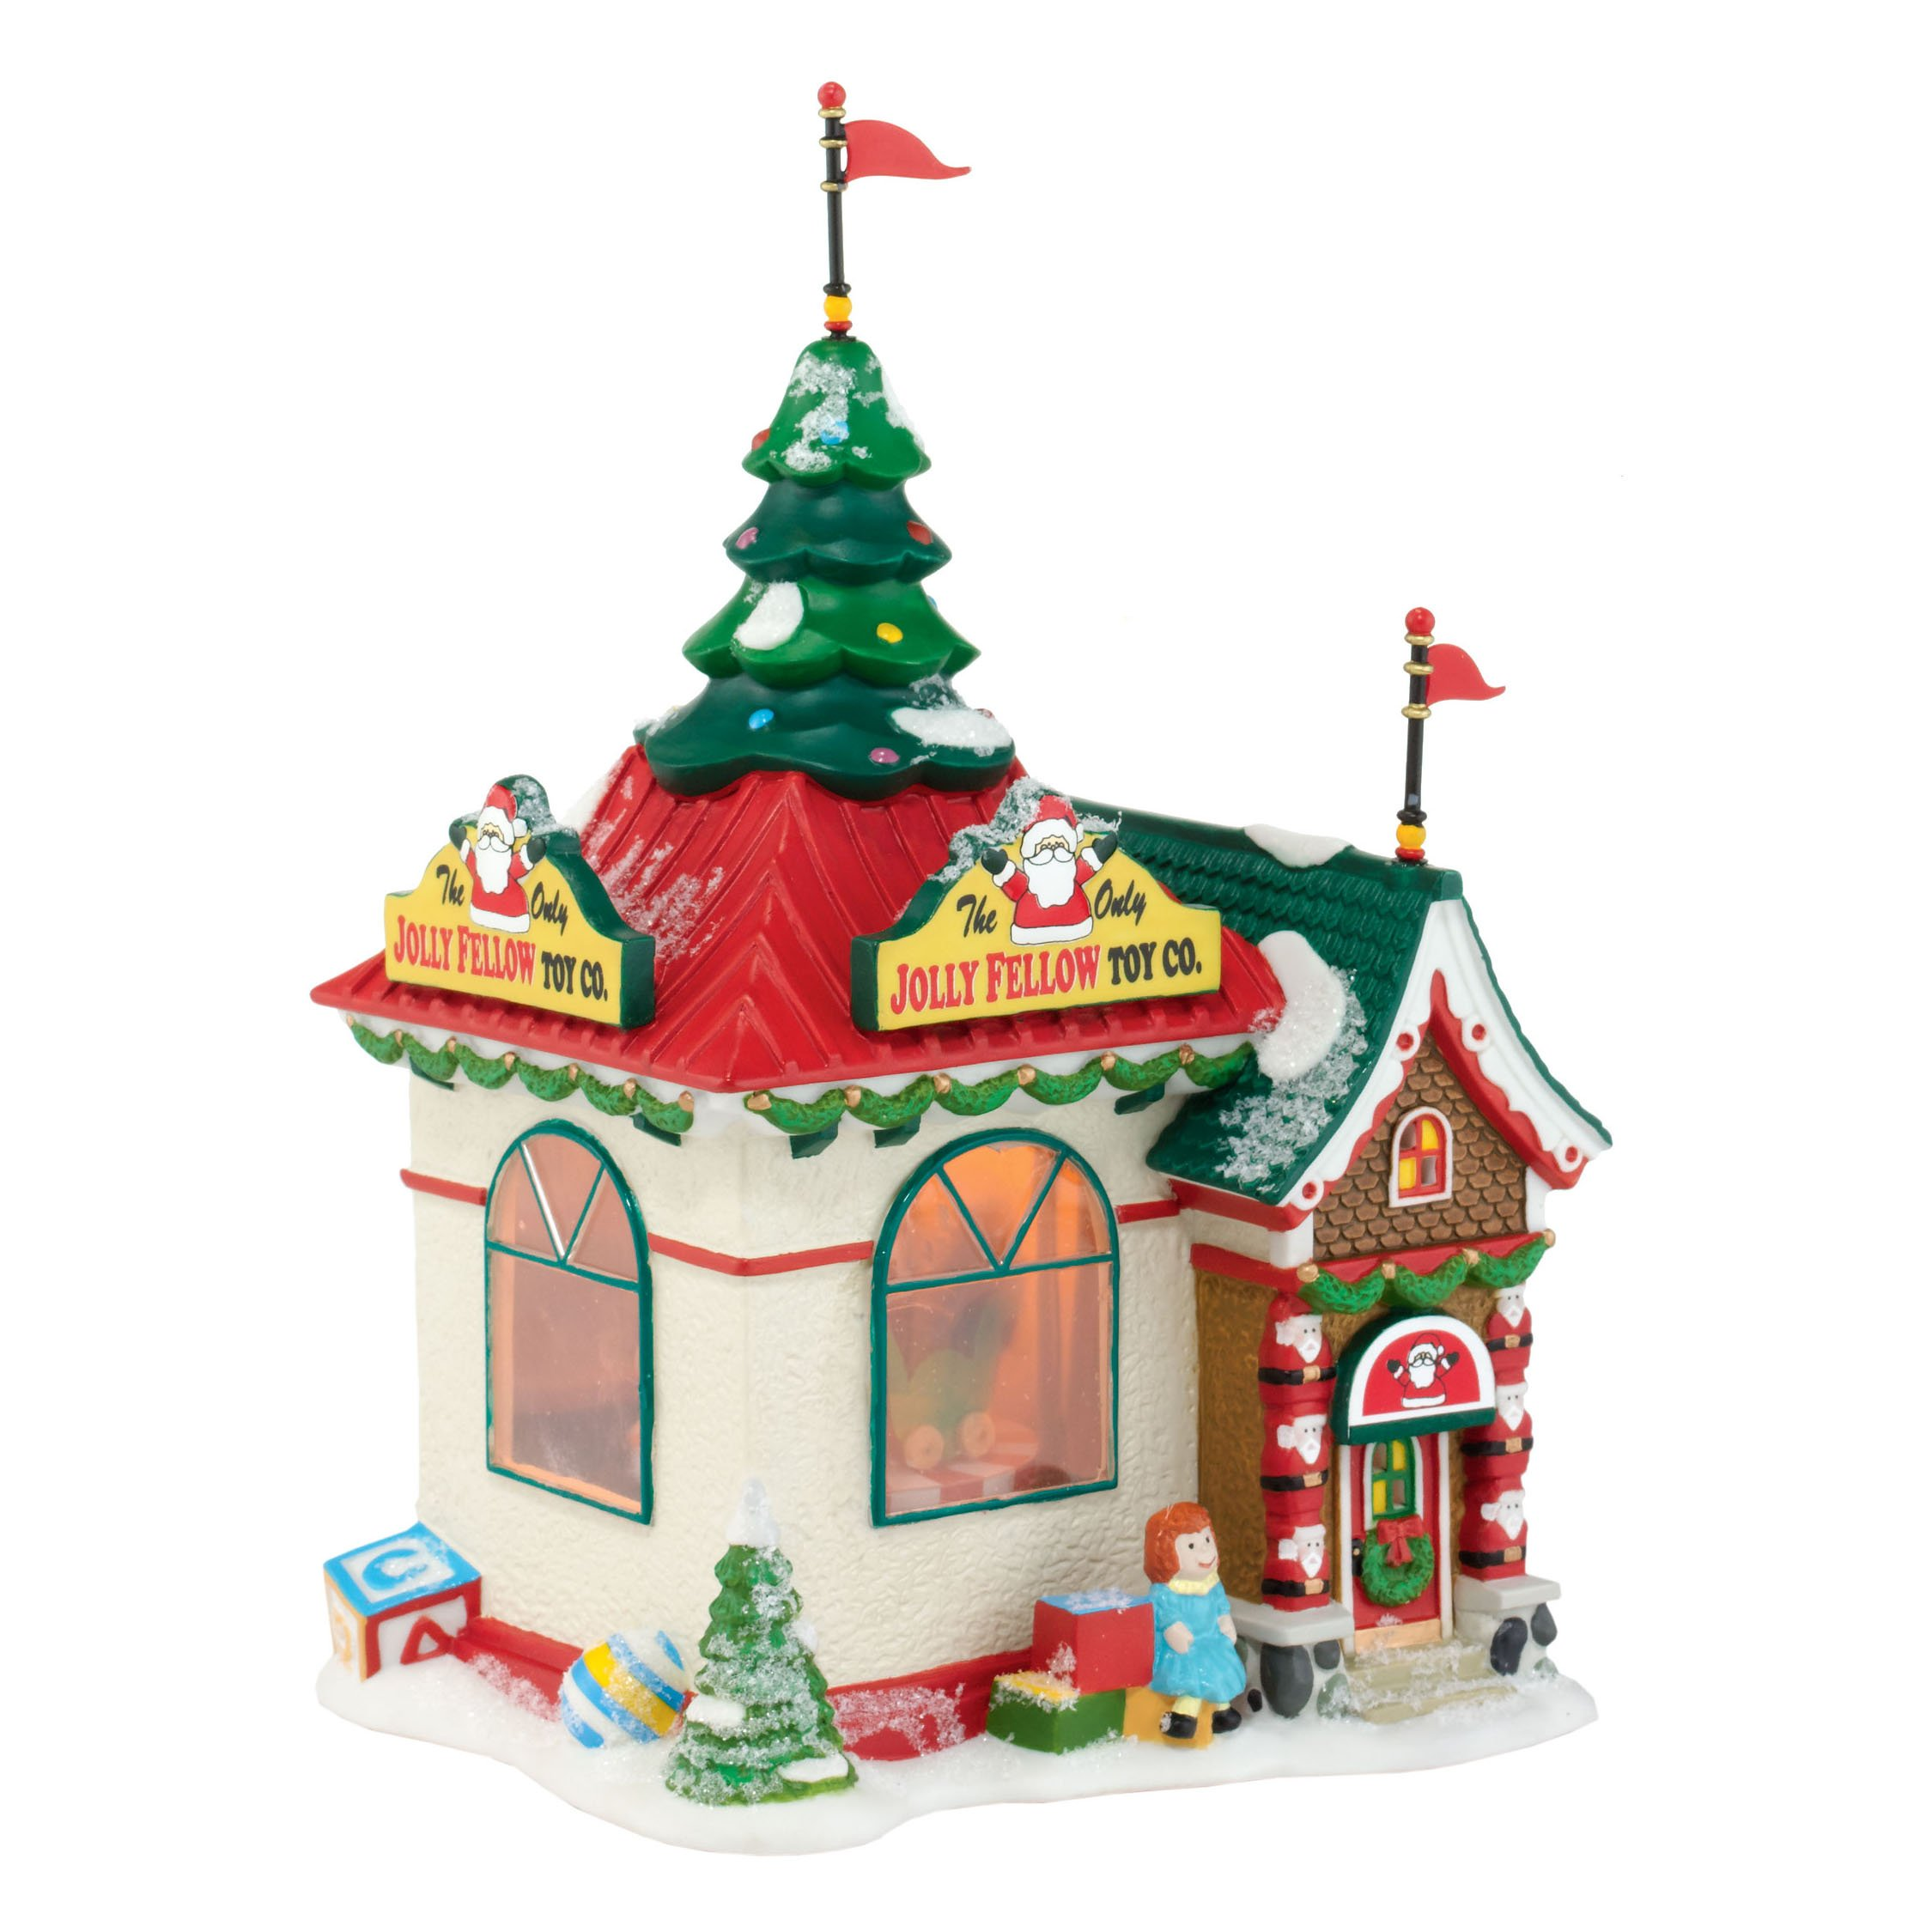 Department 56 North Pole Village Jolly Fellow Toy Lit House, 7.88 inch